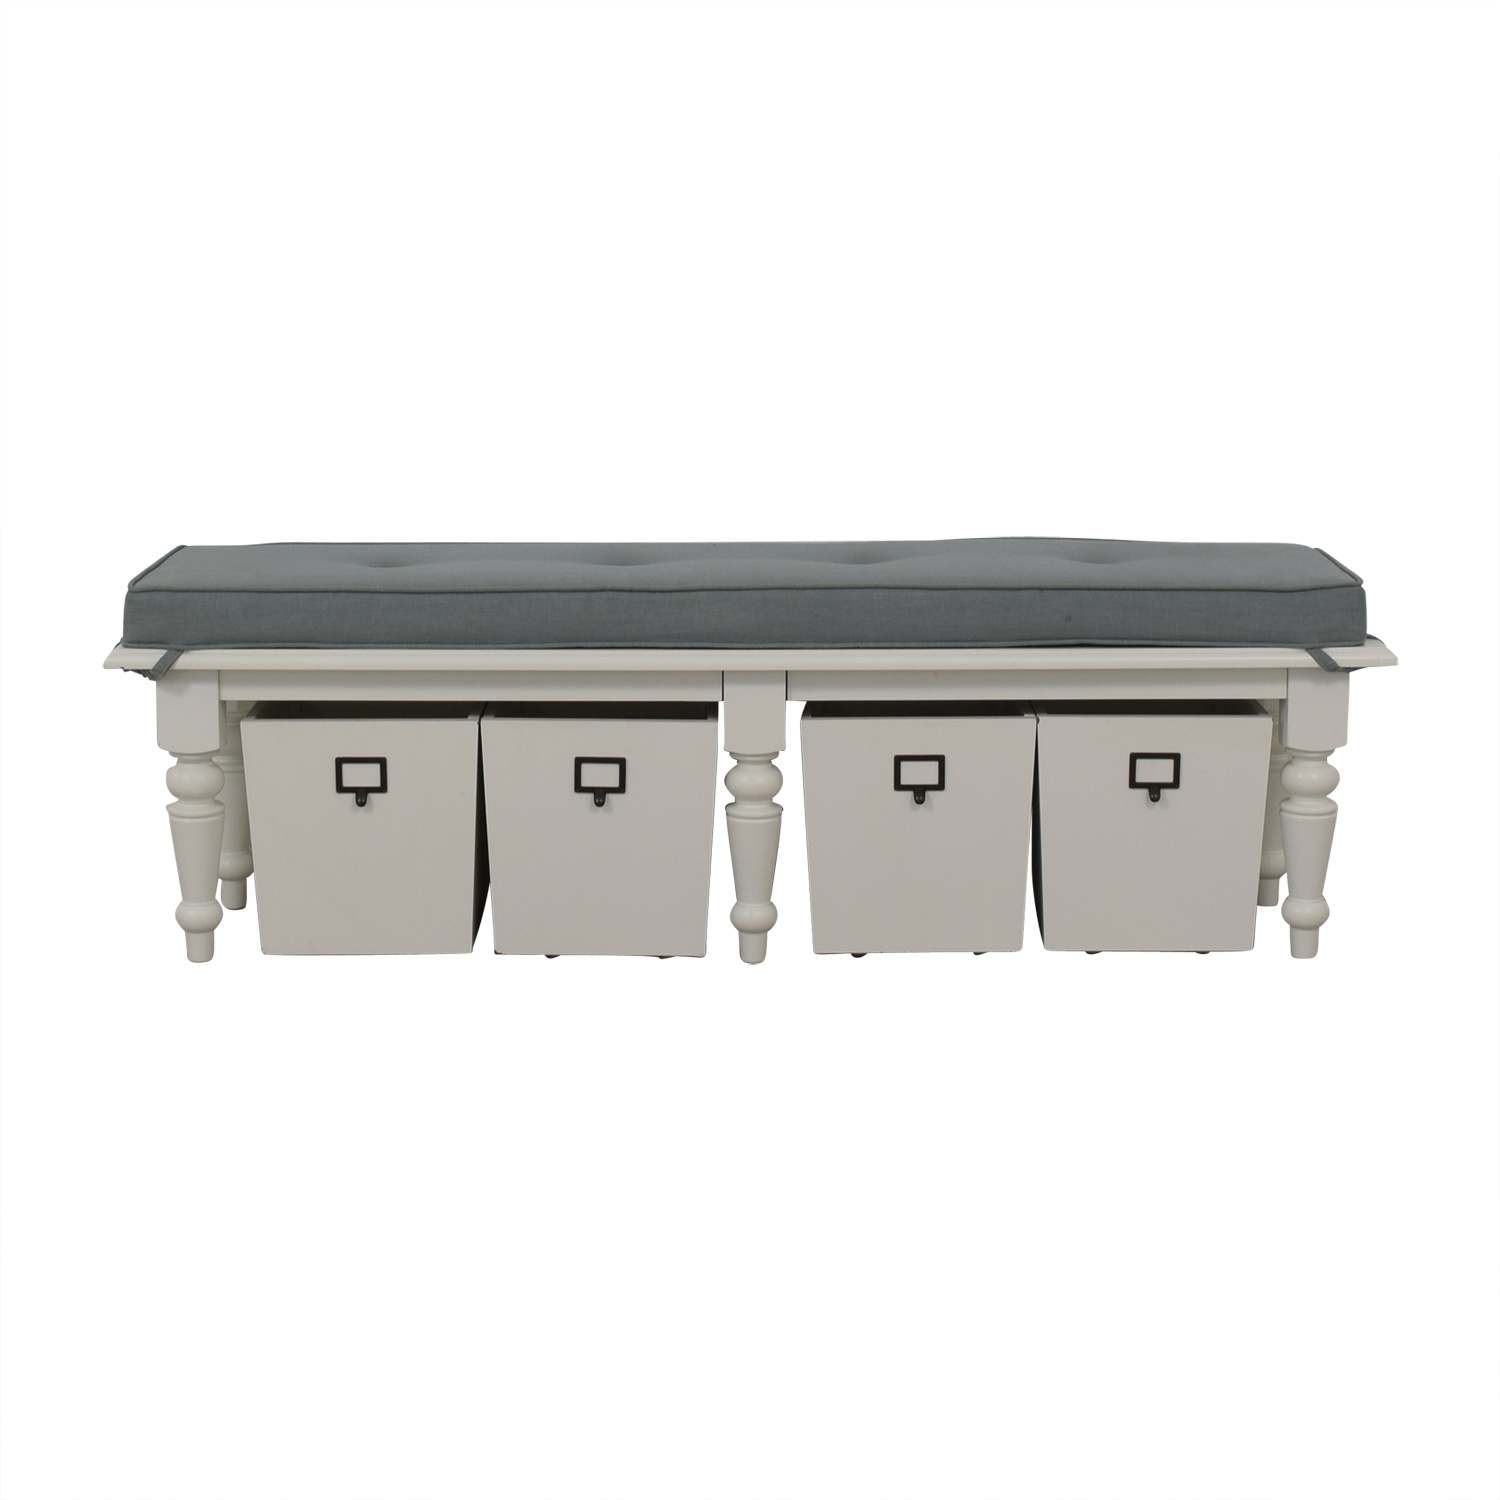 Home Goods Home Goods Grey Upholstered and White Bench with Four Storage Boxes coupon